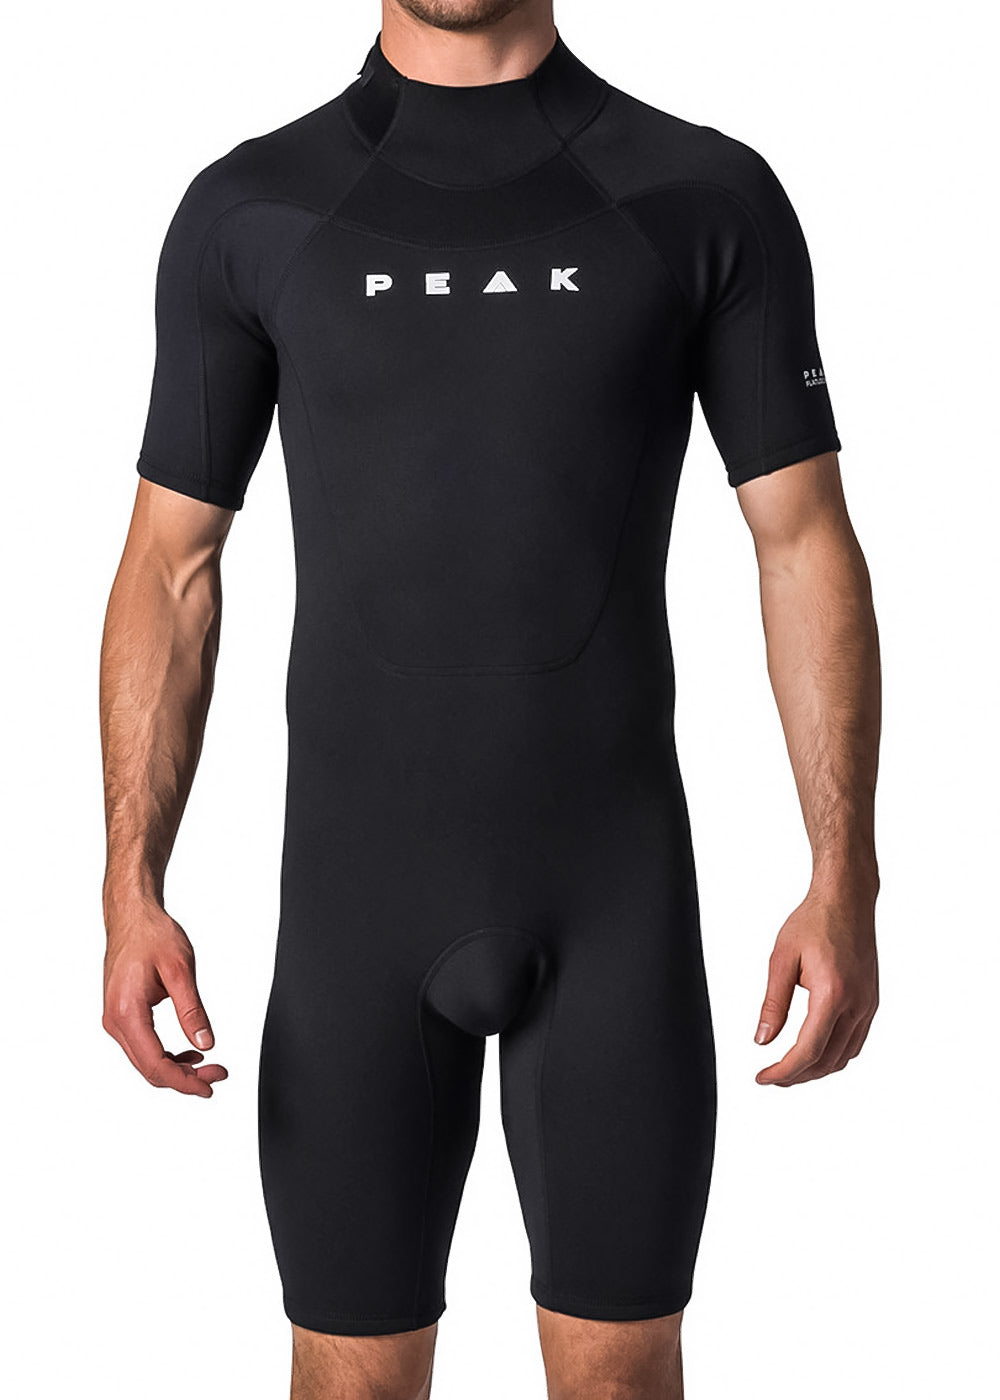 peak mens surfing wetsuits